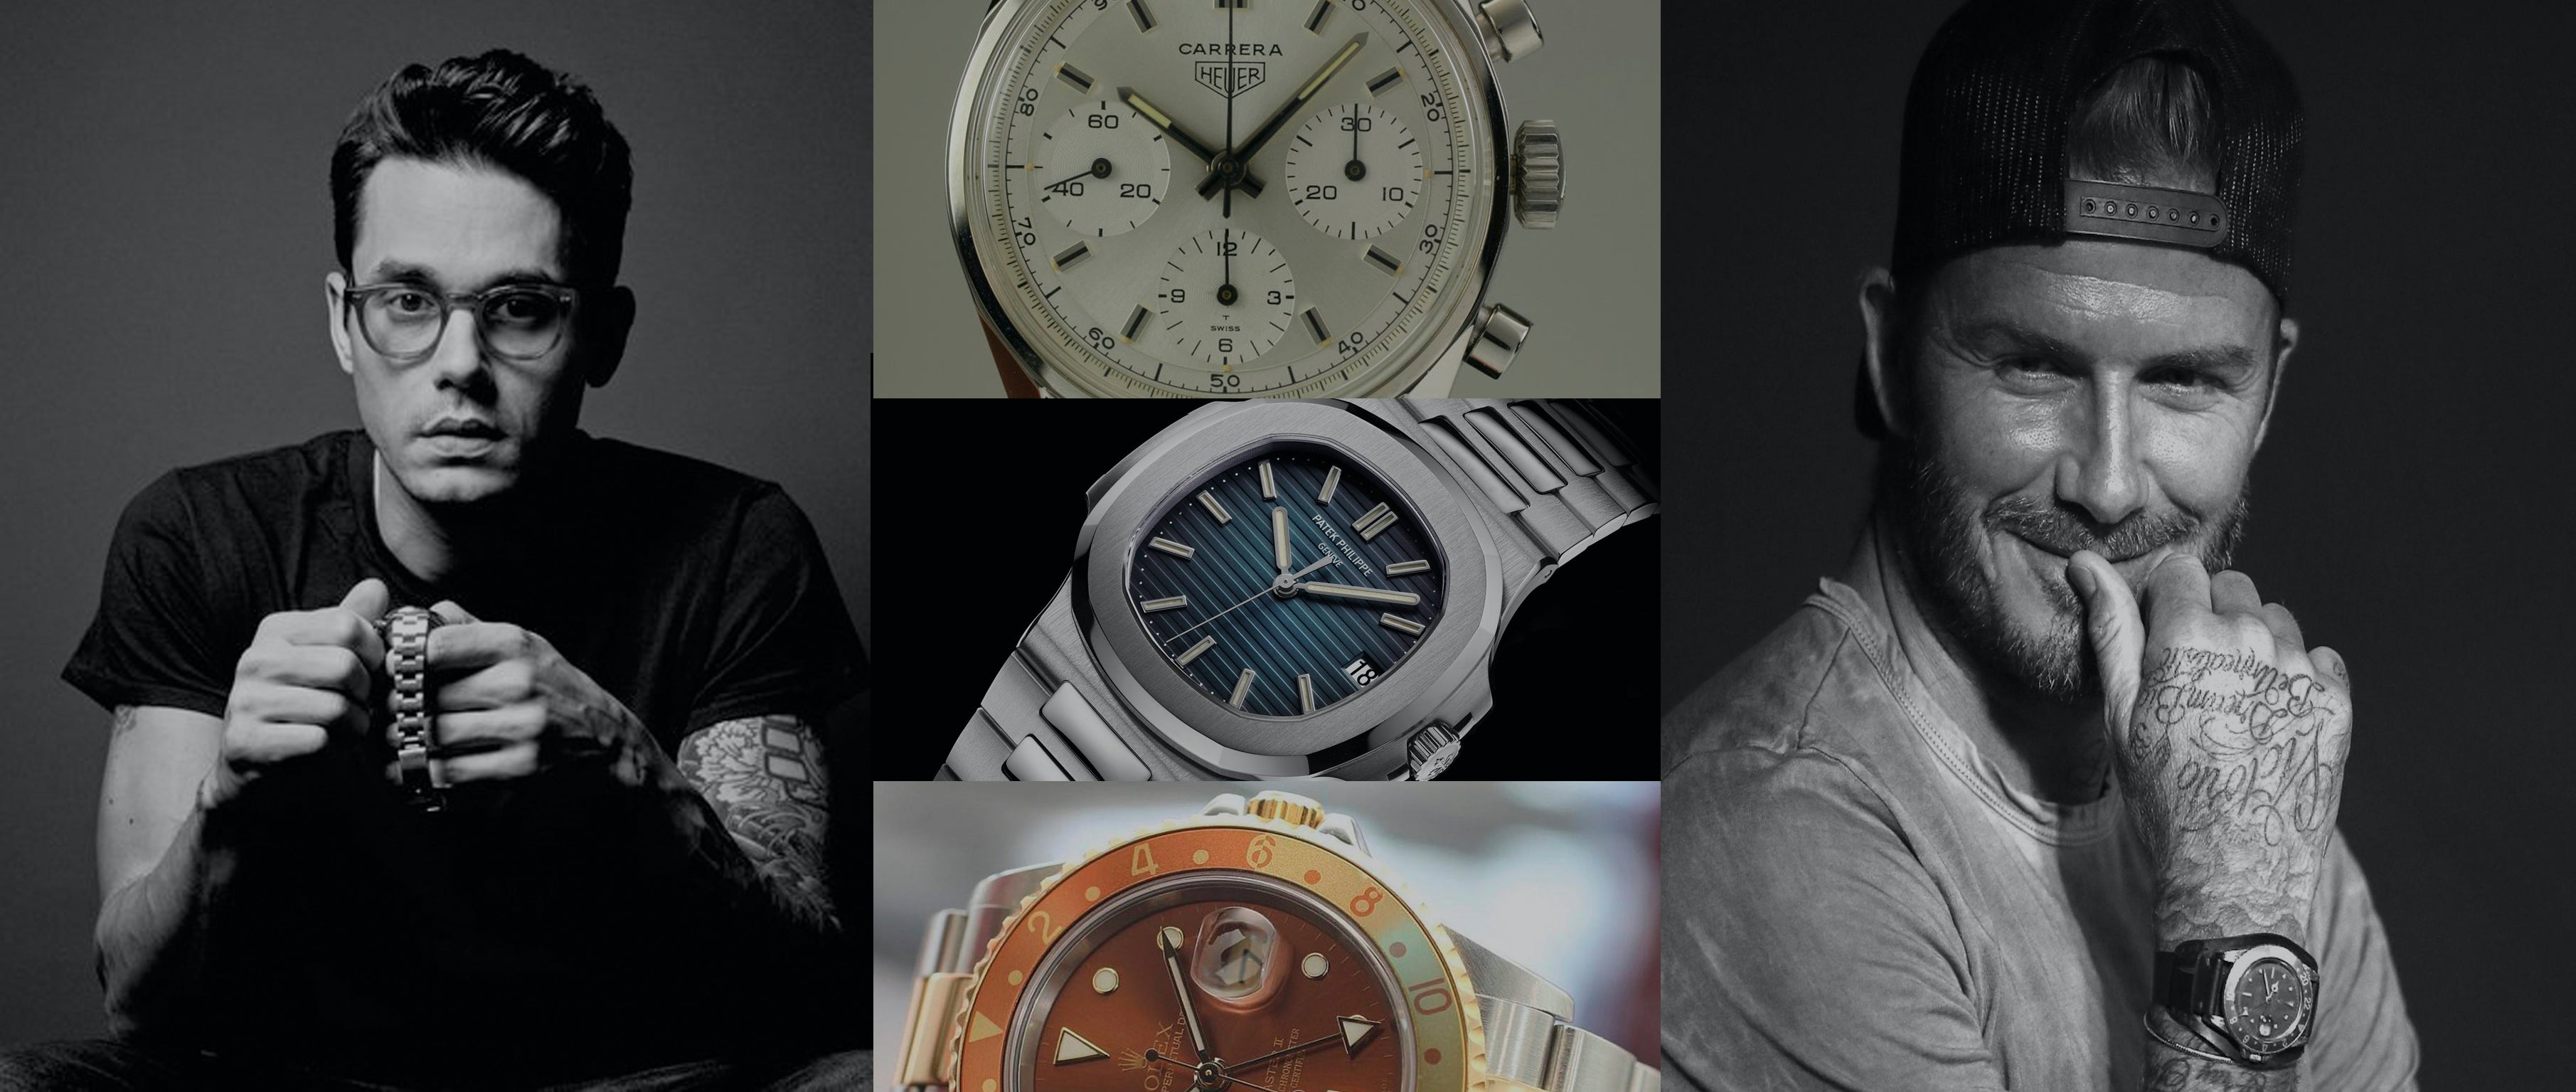 Celebrities and their vintage watch collections who has the best taste ashton blakey for Top celebrity watches